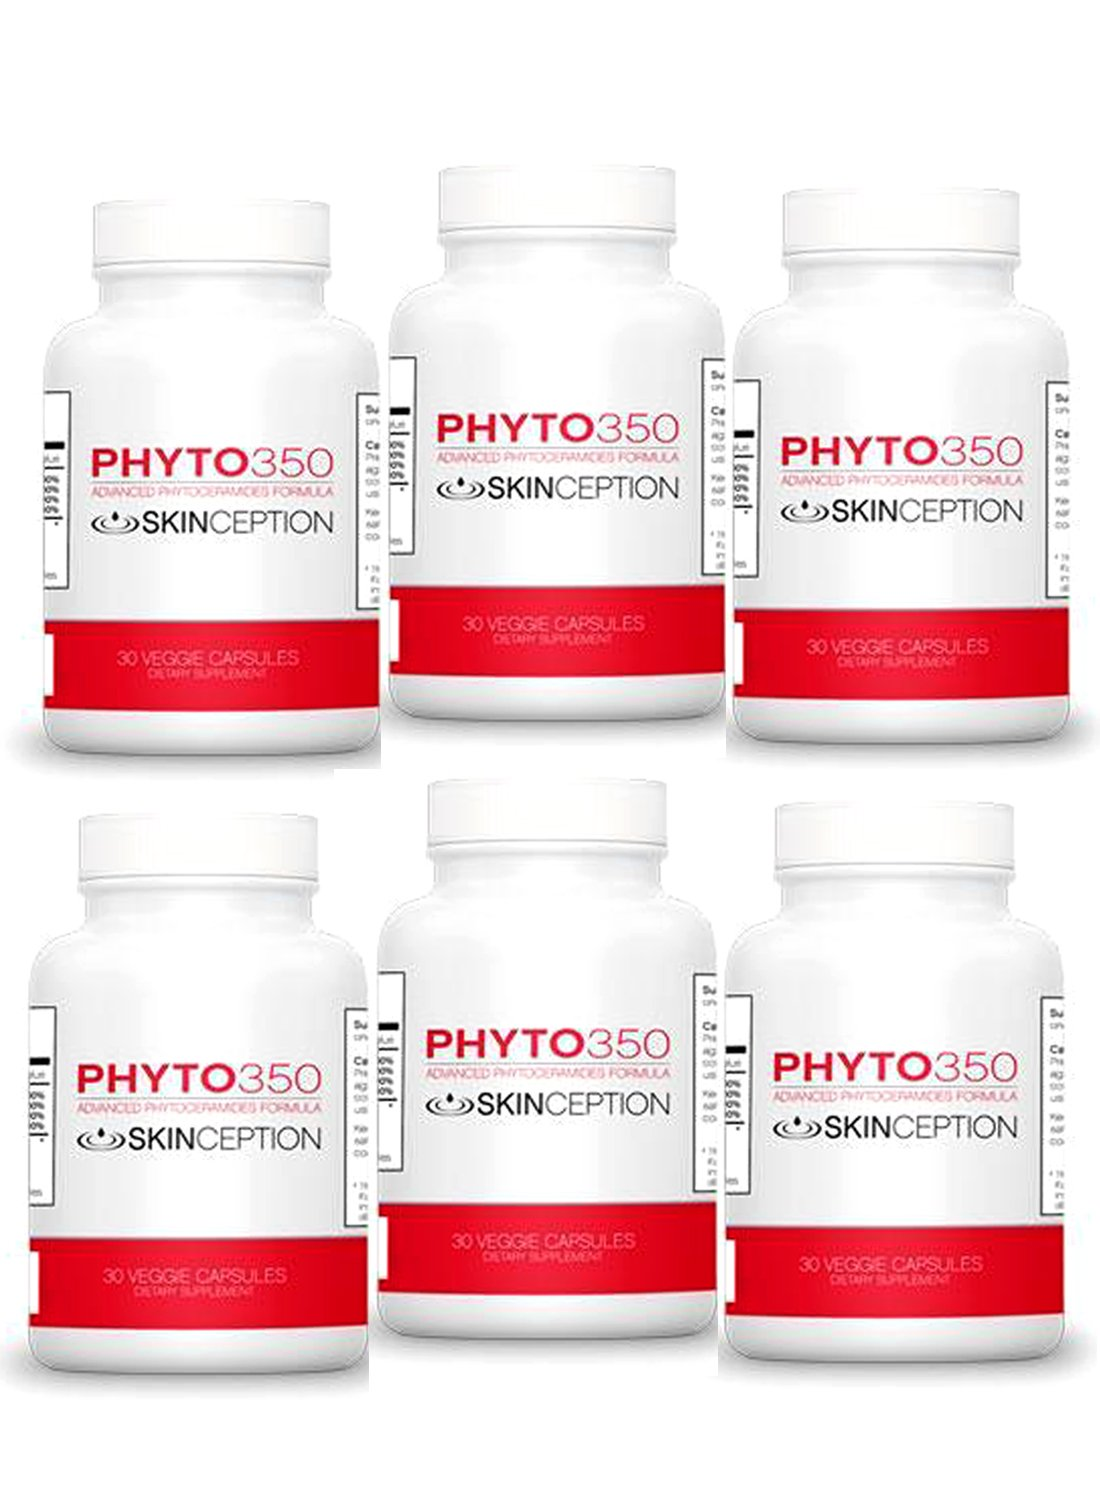 Phyto350 Anti Wrinkle Formula: The Smart Way to Skin Rejuvenation 2